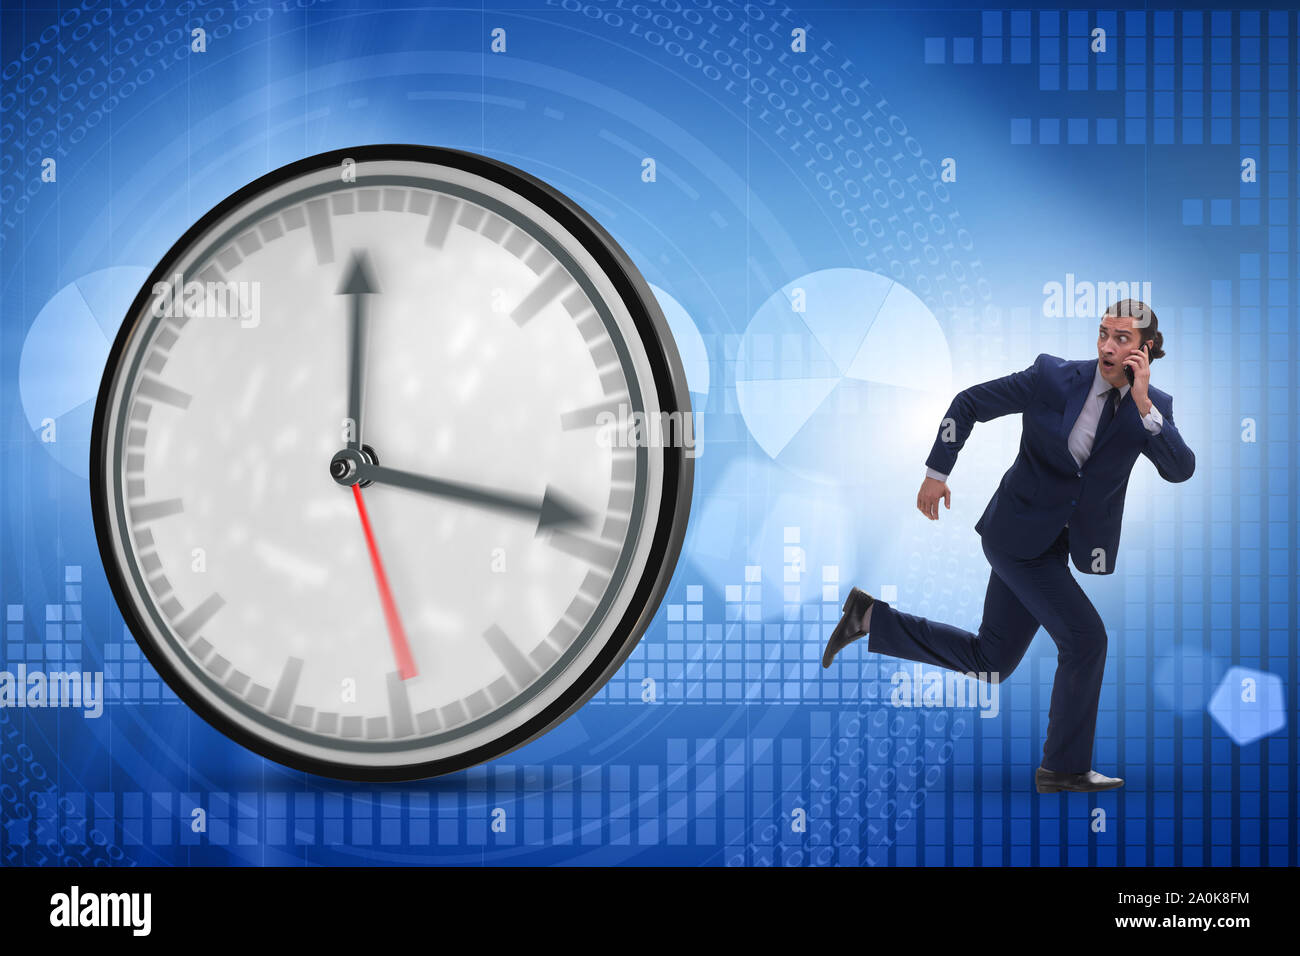 The businessman employee in time management concept Stock Photo